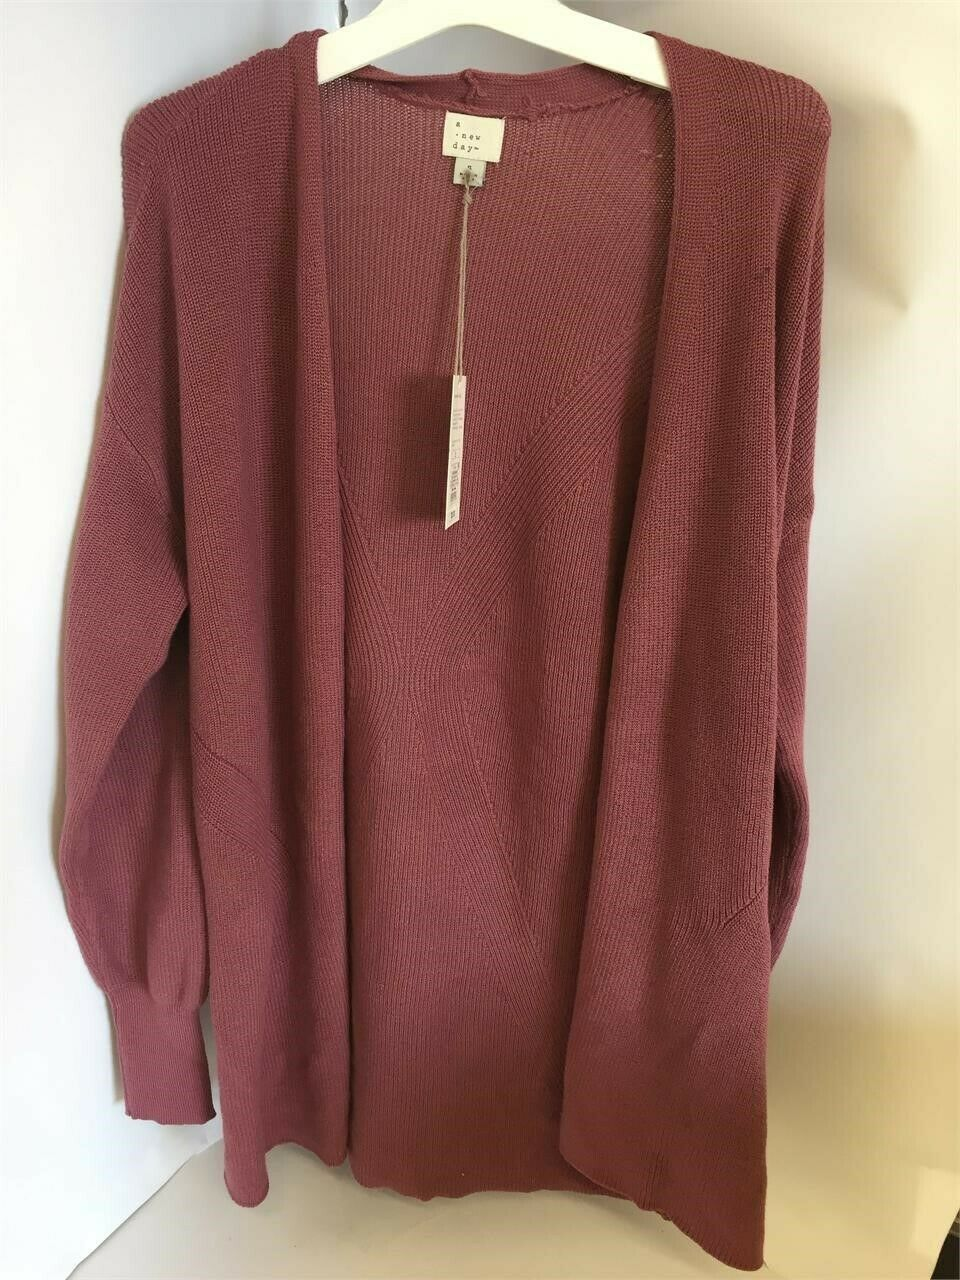 NWT A New Day Women's Size S Cardigan Long Sleeve Sweater Size Small Maroon